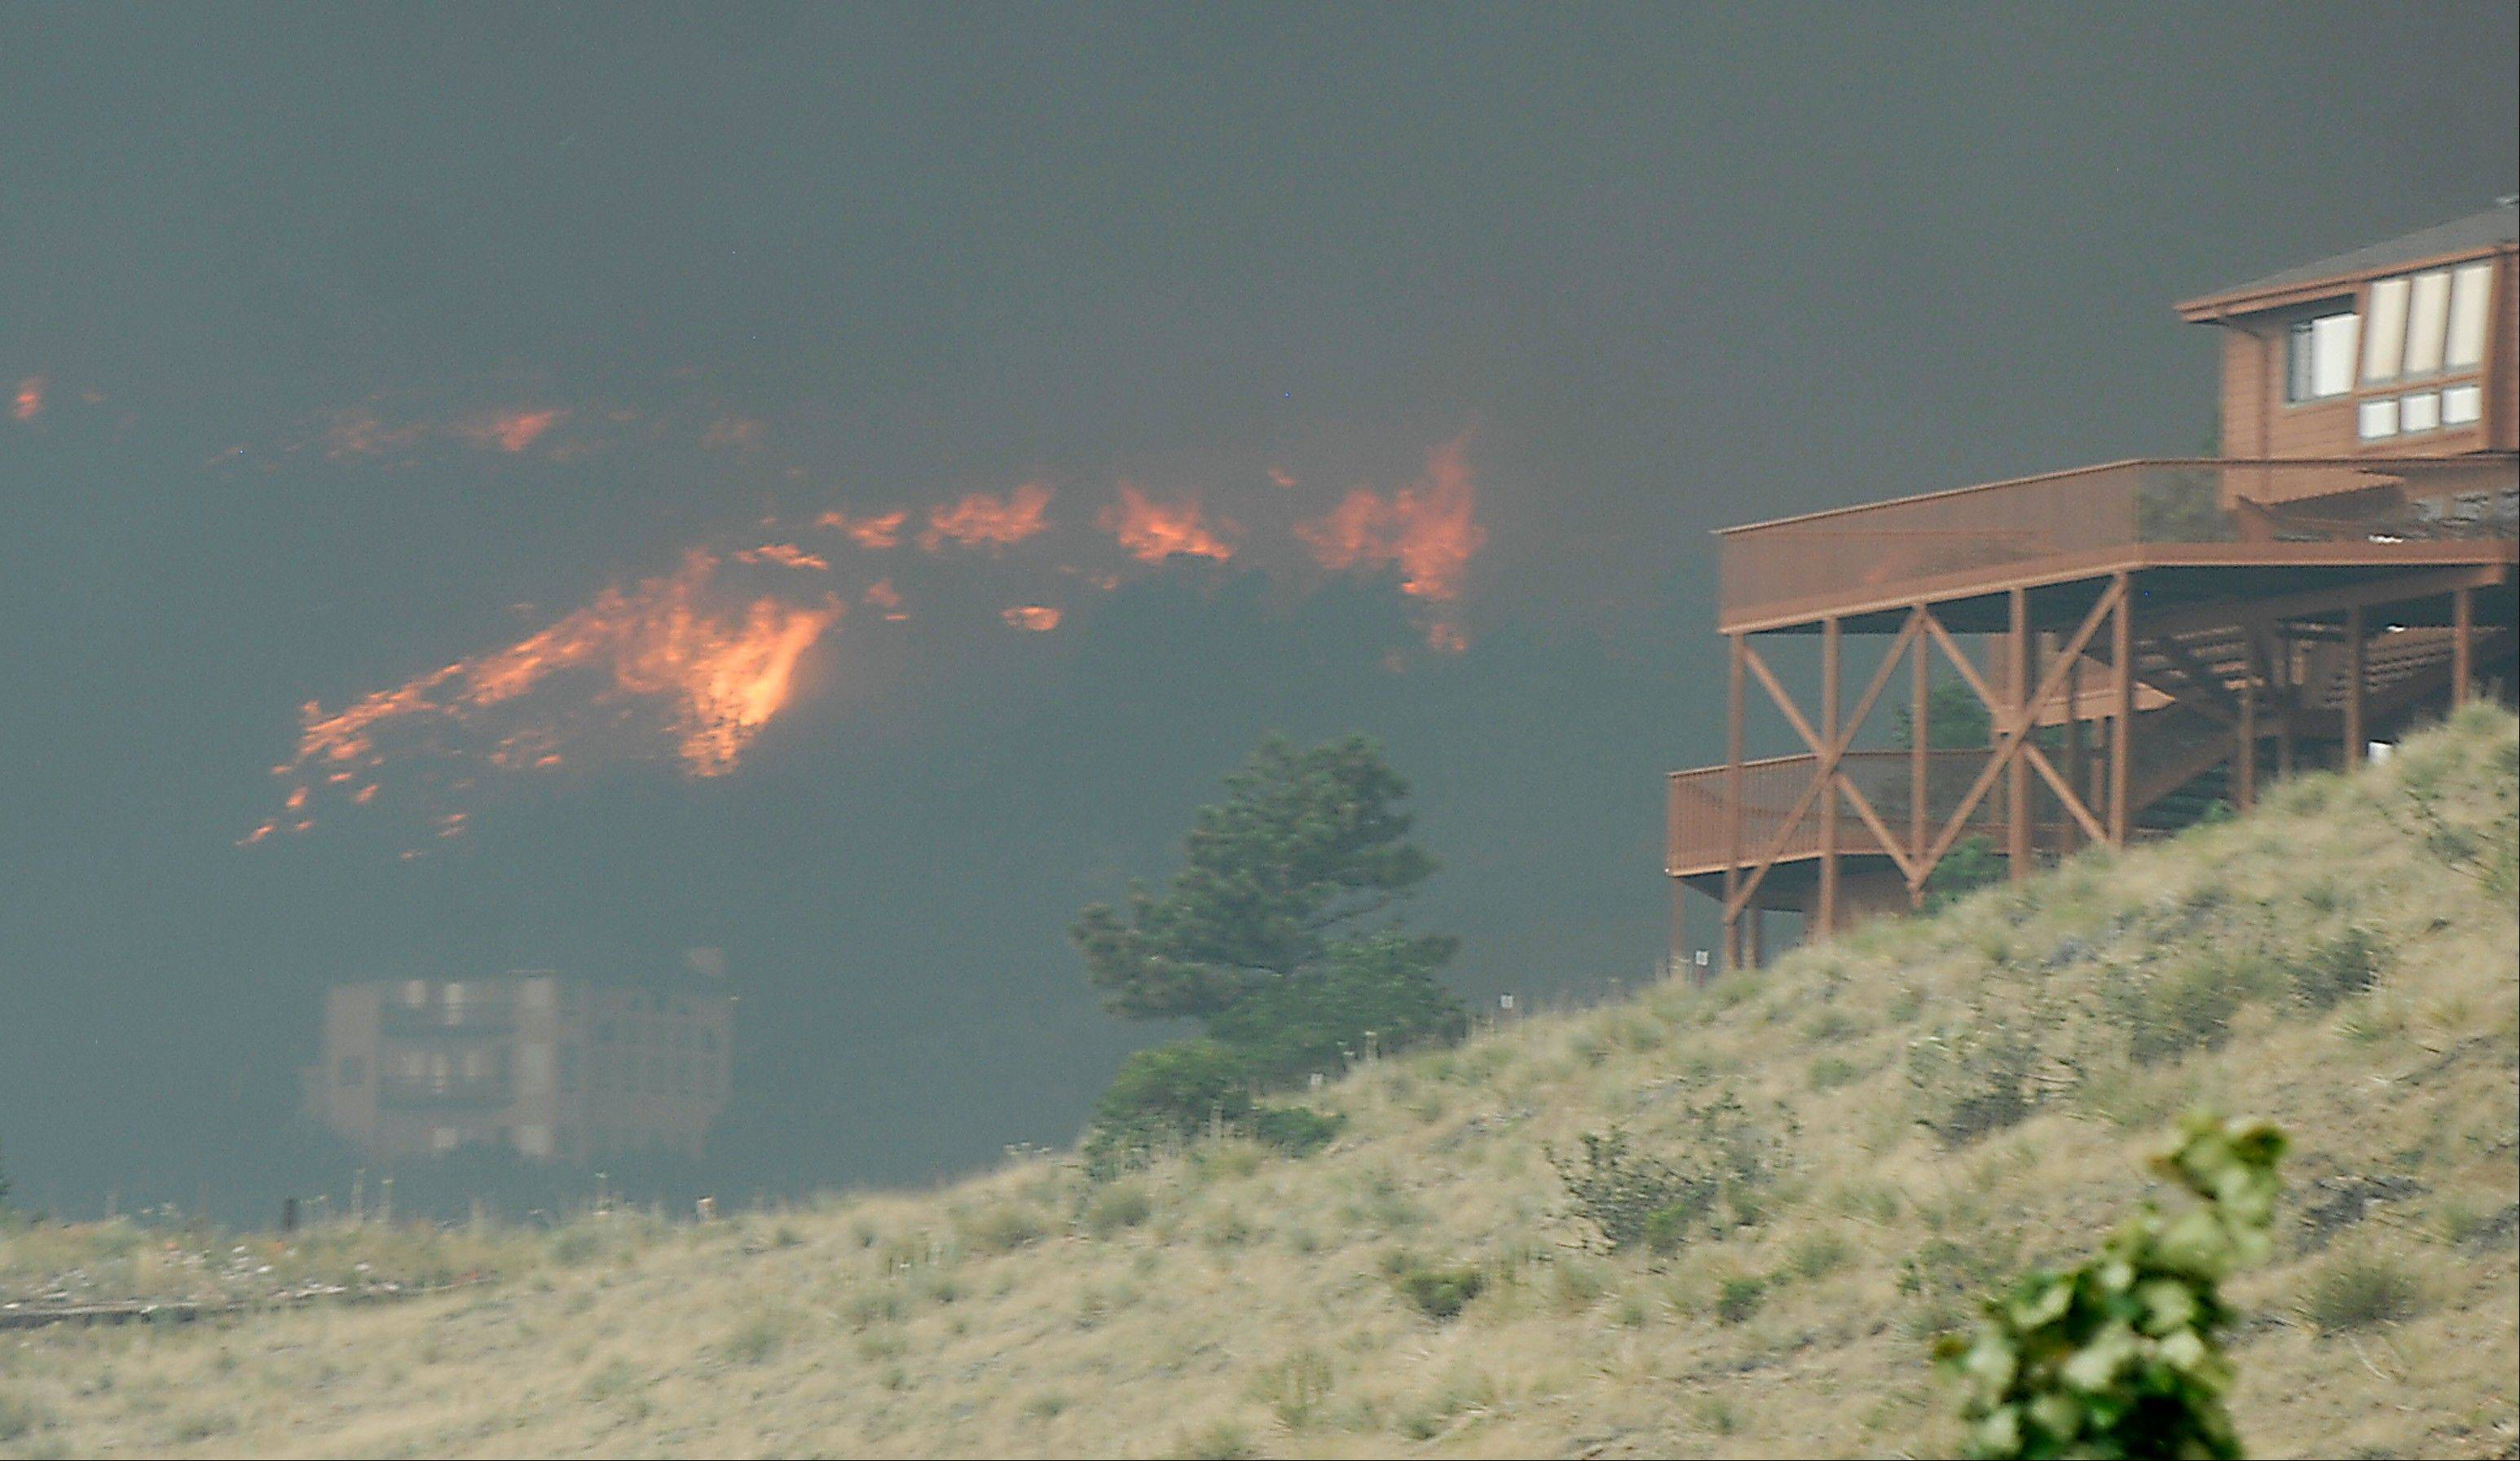 Flames and smoke from the Waldo Canyon Fire surround a home as it races down into western portions of Colorado Springs, Colo. on Tuesday, June 26, 2012 leaving a trail of destruction and burning homes and buildings in it's path. Heavily populated areas in the fire's path have been affected.